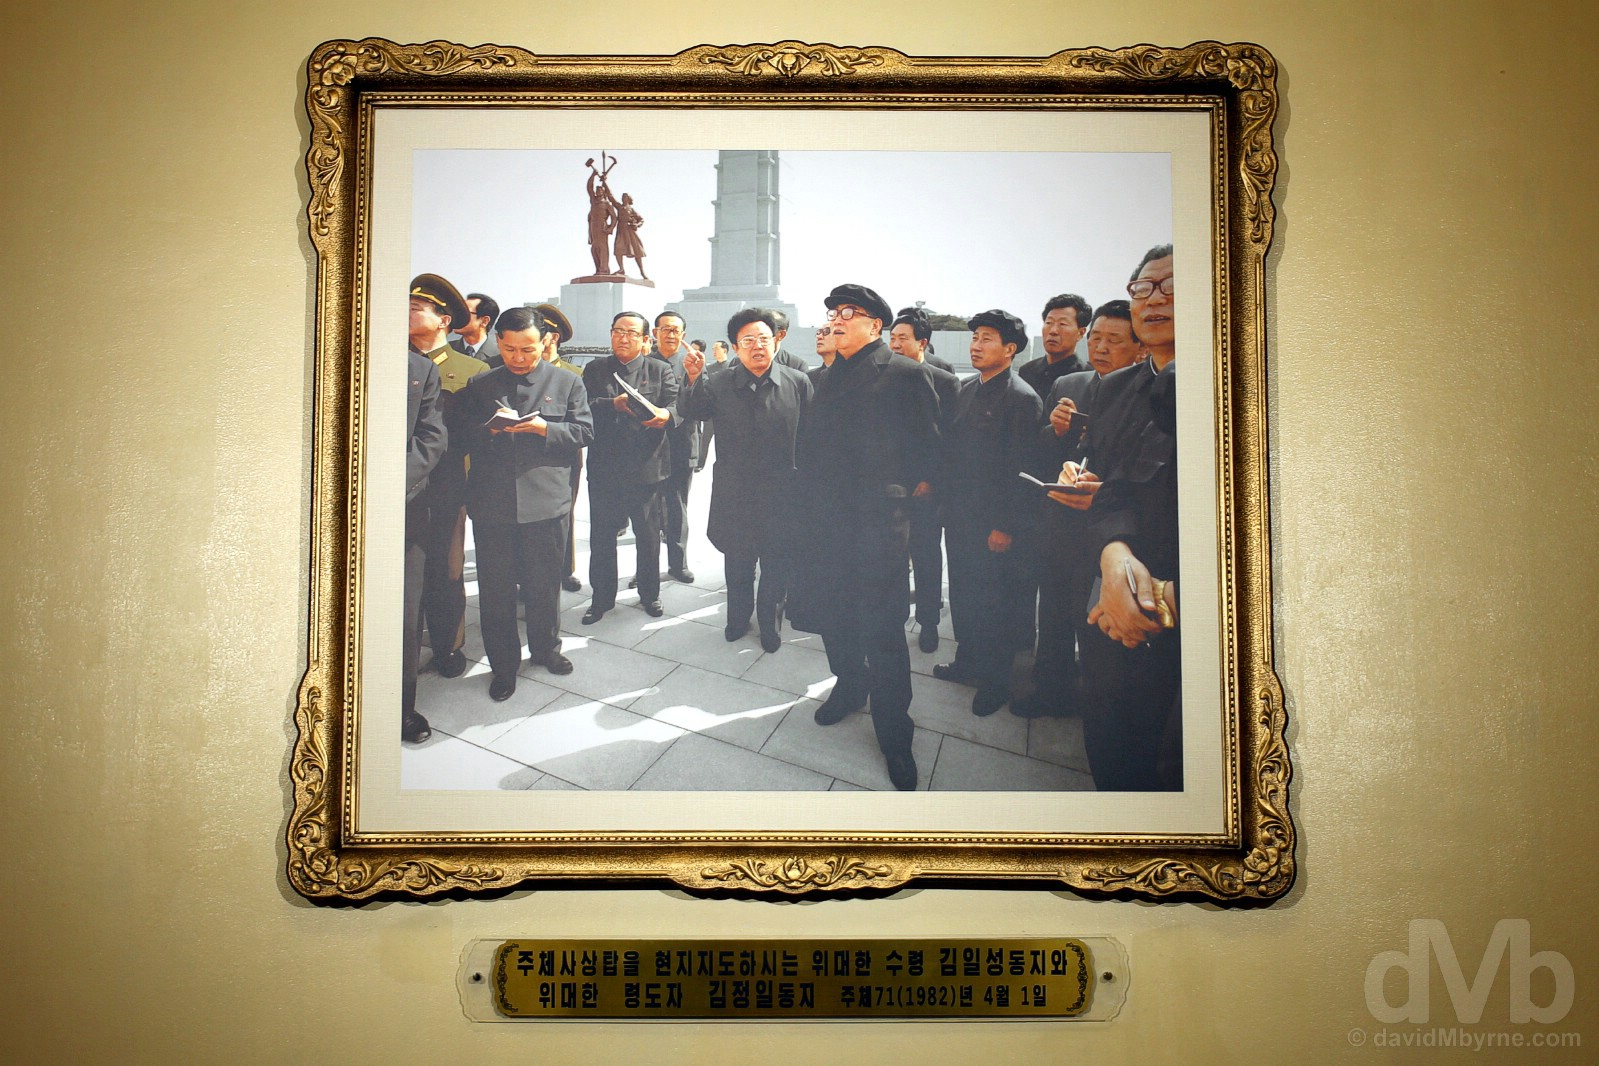 A picture, dated 1982, showing Kim Il-sung, The Great Leader & Kim Jong-il, The Dear Leader, on display at the base of the Juche Tower, Pyongyang, North Korea. August 15, 2017.